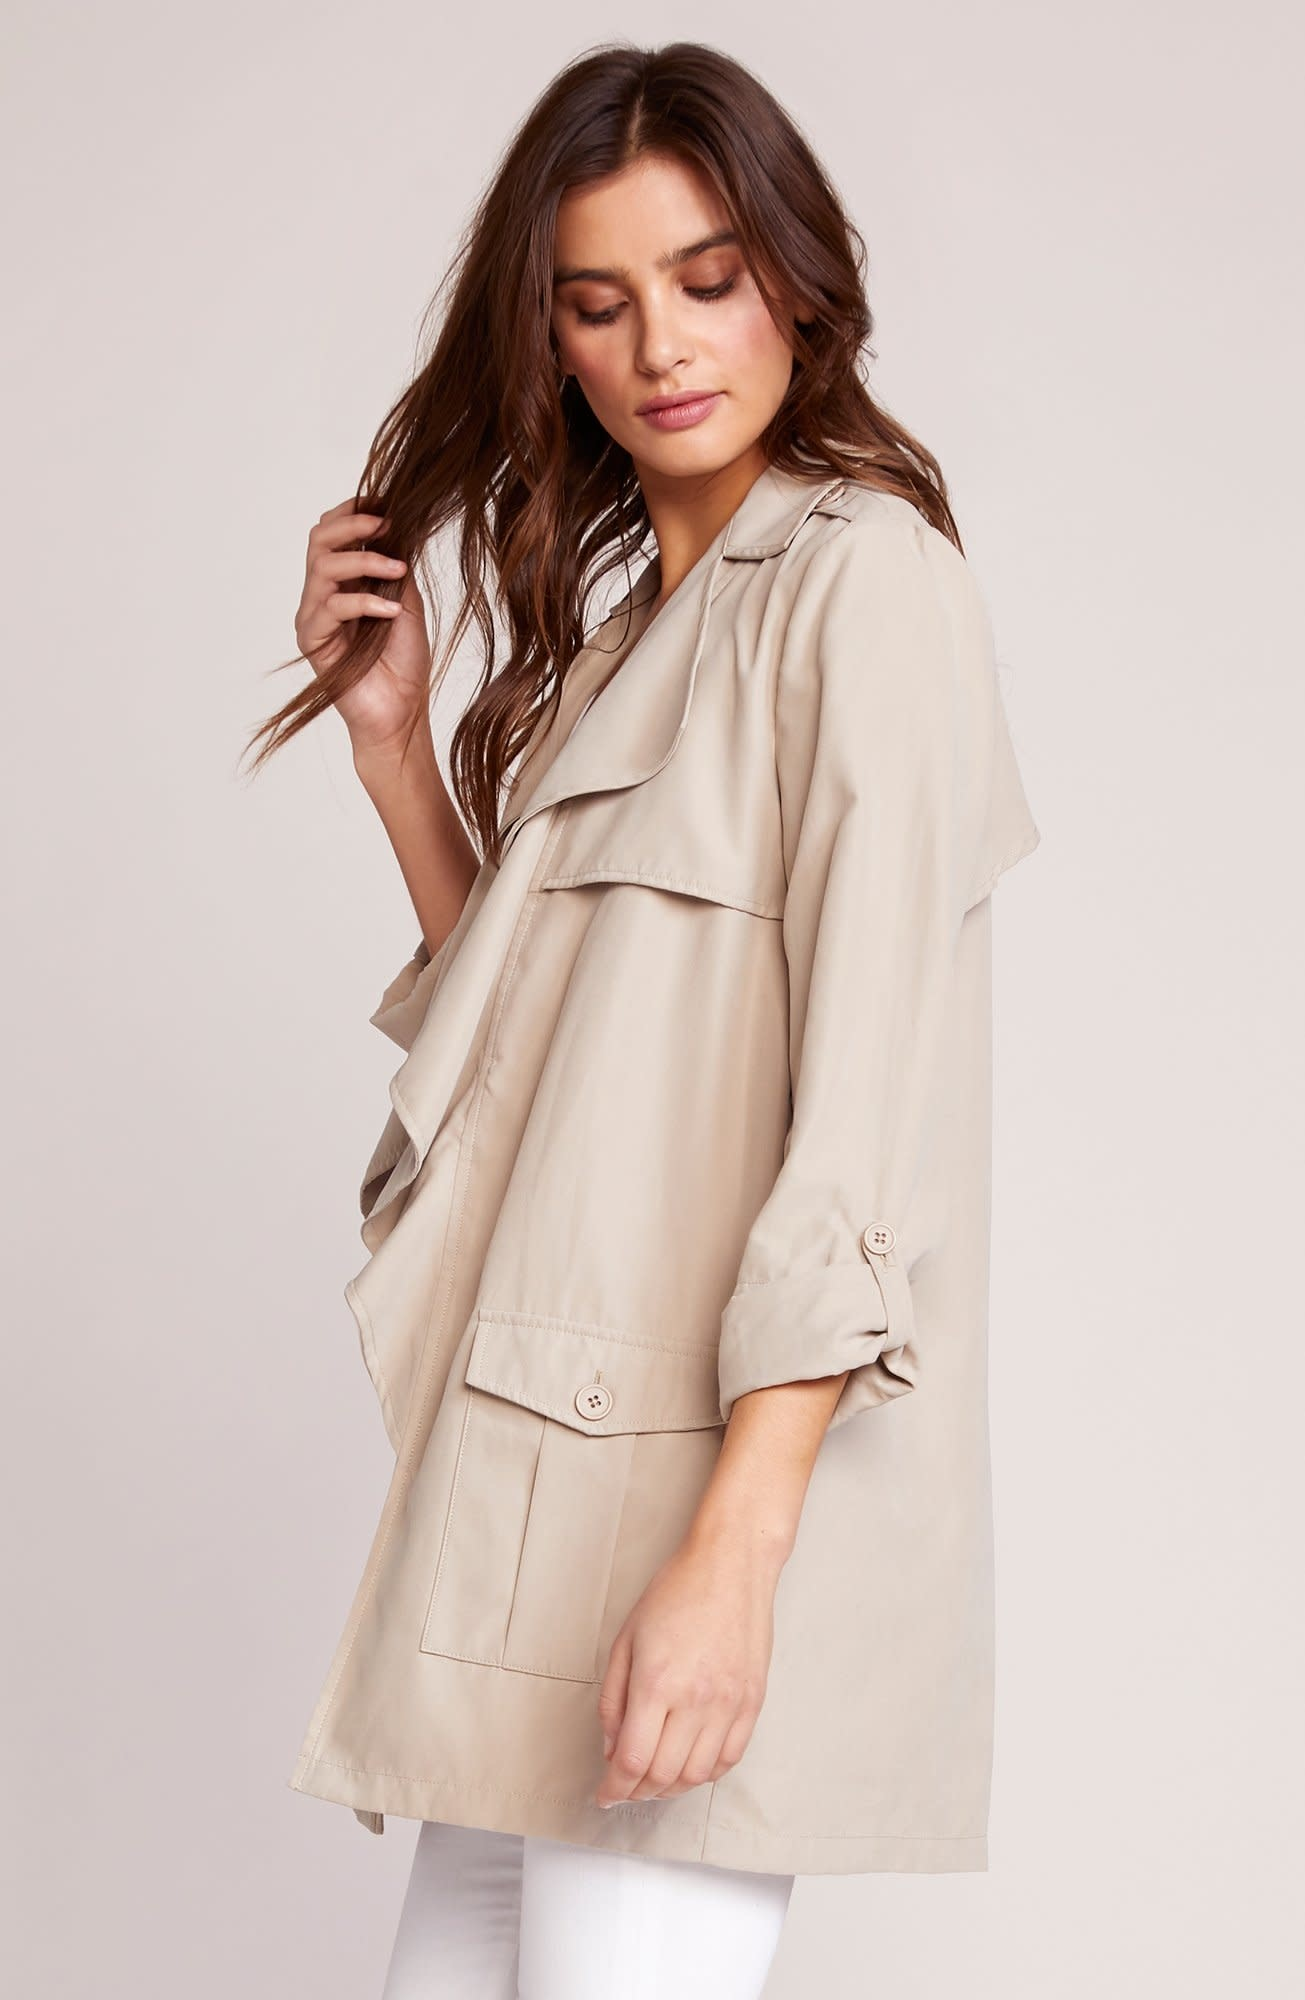 Jack by BB Dakota Private Eyes Trench